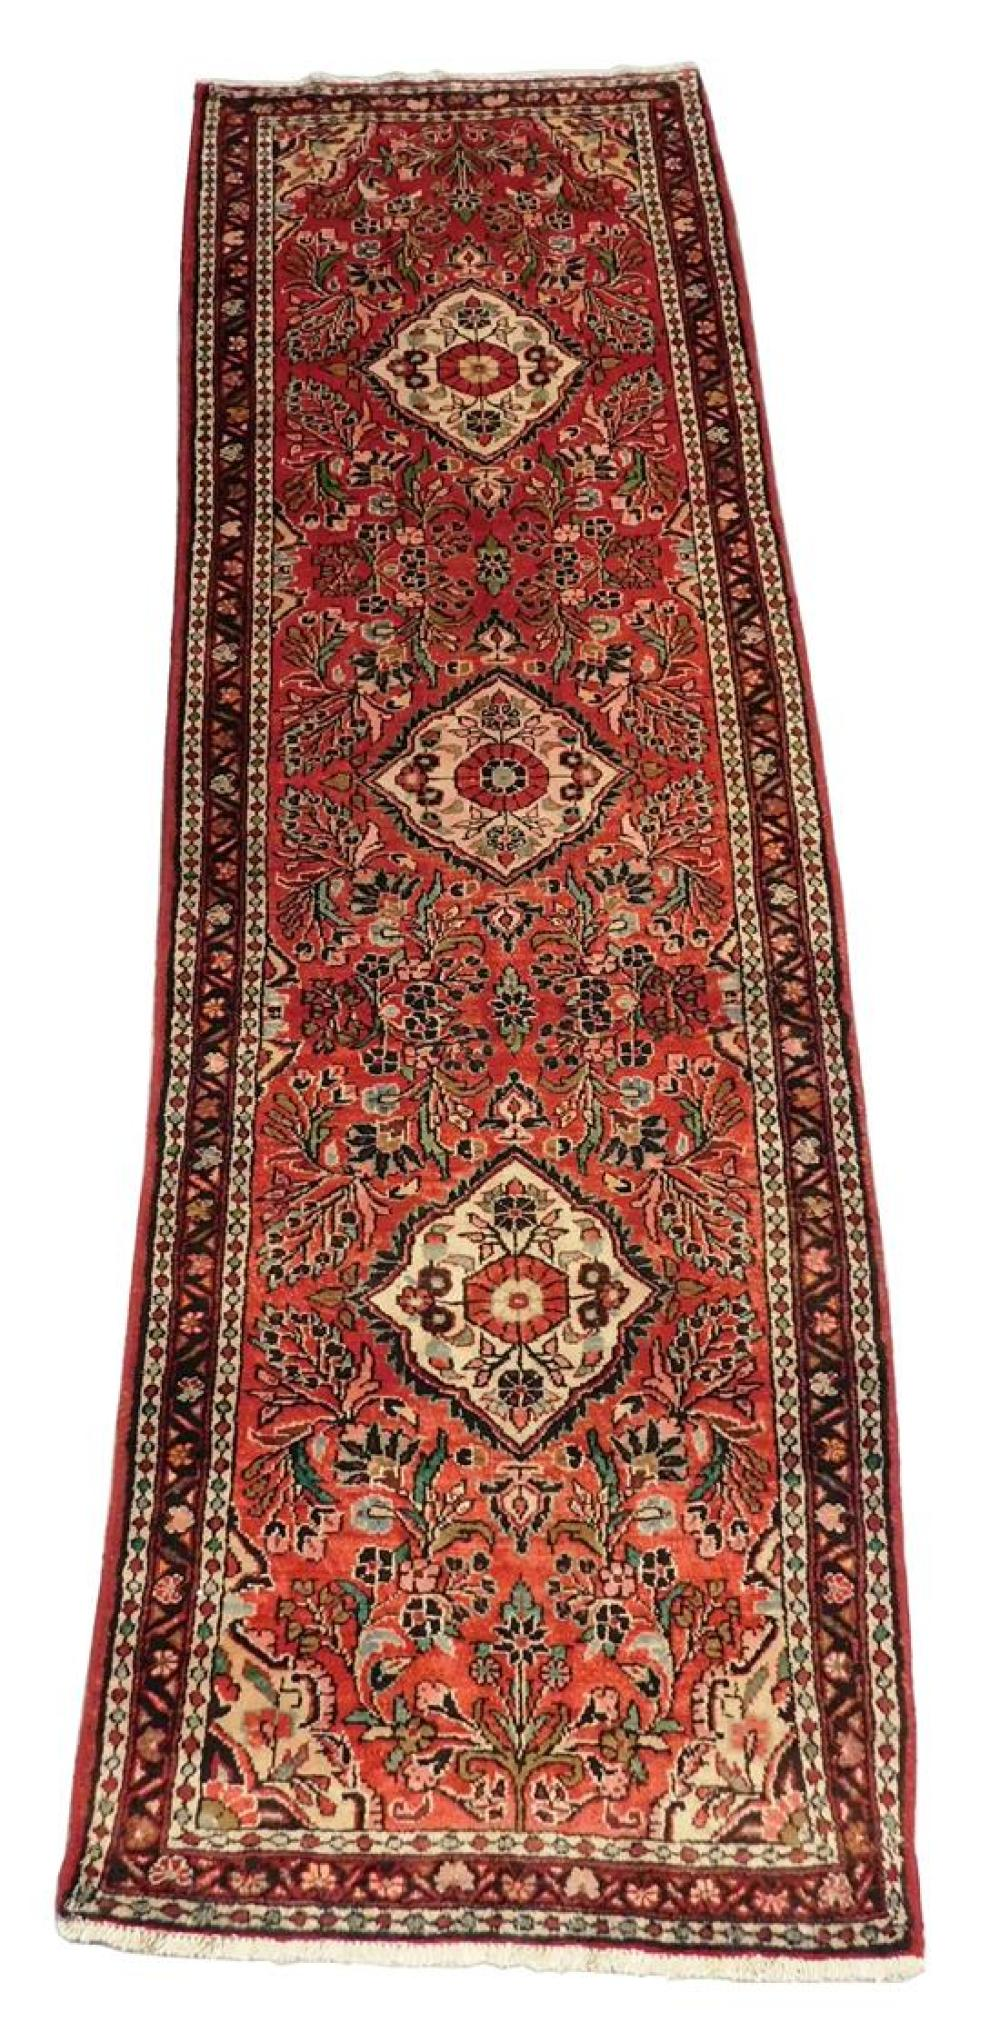 """RUG: Persian Hamadan, 10' 6"""" x 3' 3"""", 100% wool on cotton, three medallions on red field, chocolate brown, very good condition but c."""